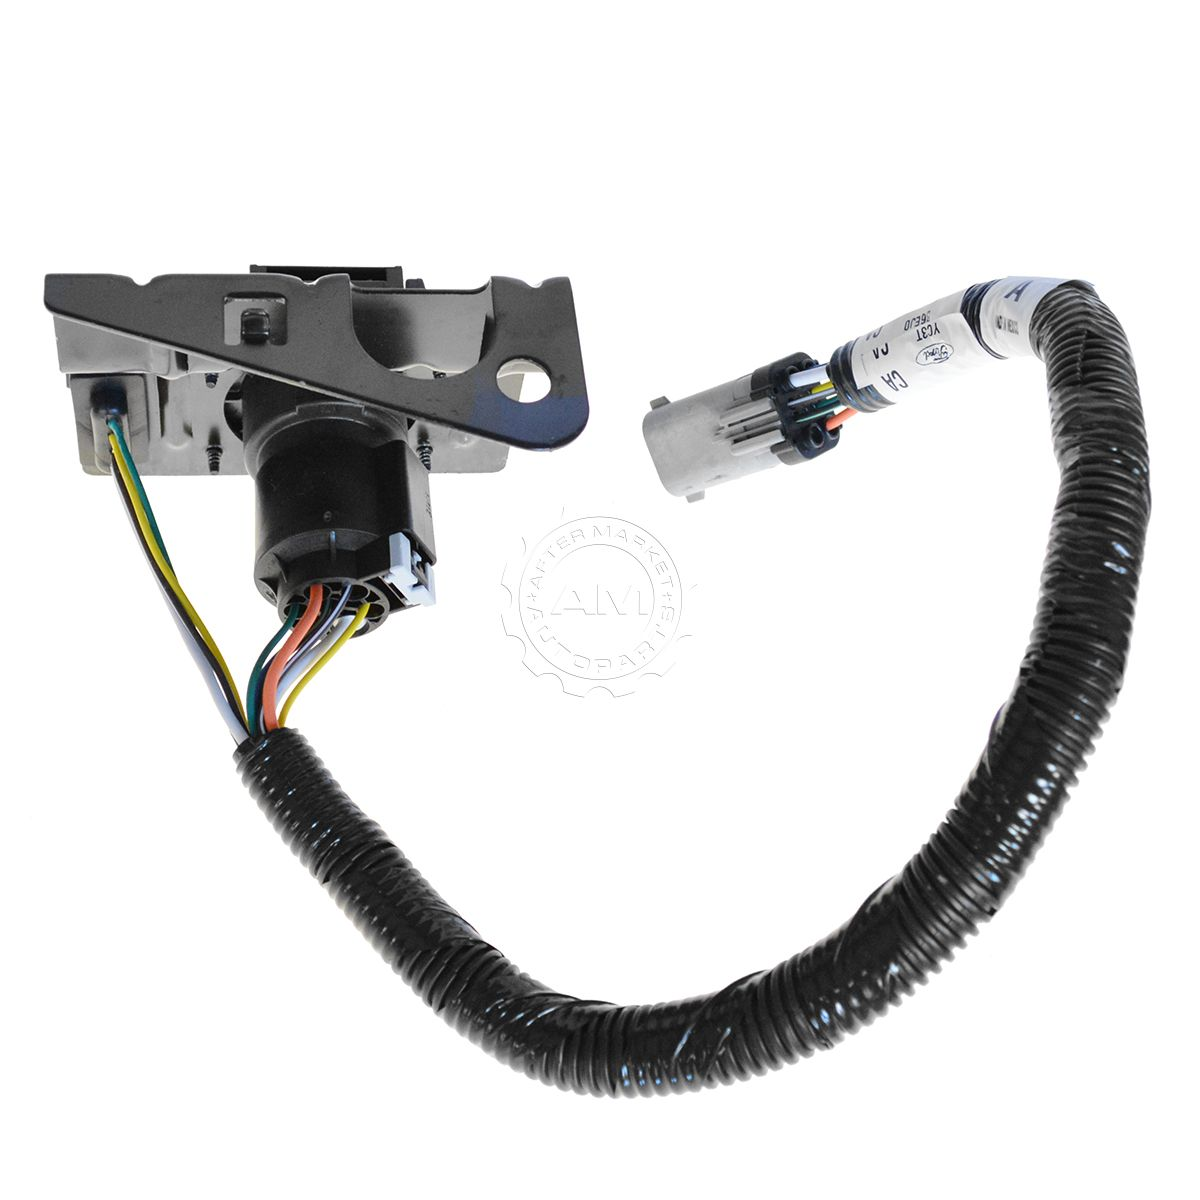 Trailer Tow Harness Everything About Wiring Diagram For Nissan Frontier Ford 4 7 Pin W Plug Bracket F250 Rh Ebay Com